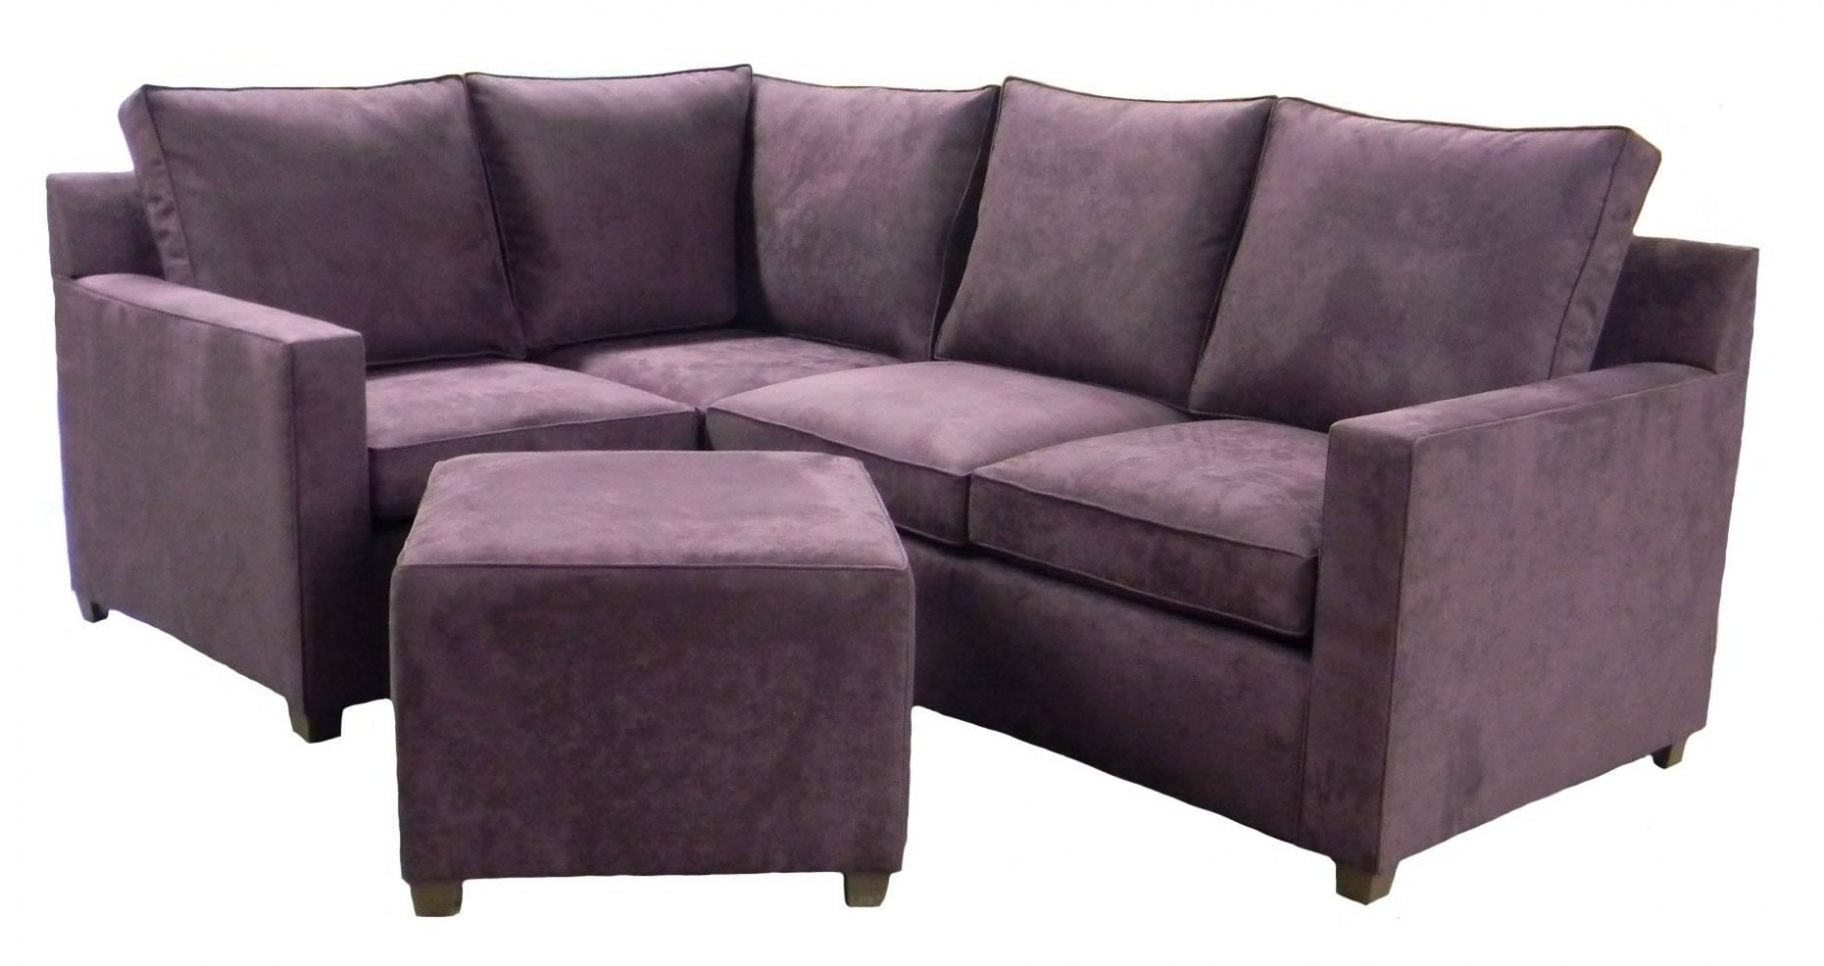 Furniture ~ Sectional Sofa Design: Apartment Size Sectional Sofa Bed Within Apartment Sectional Sofas With Chaise (View 5 of 10)